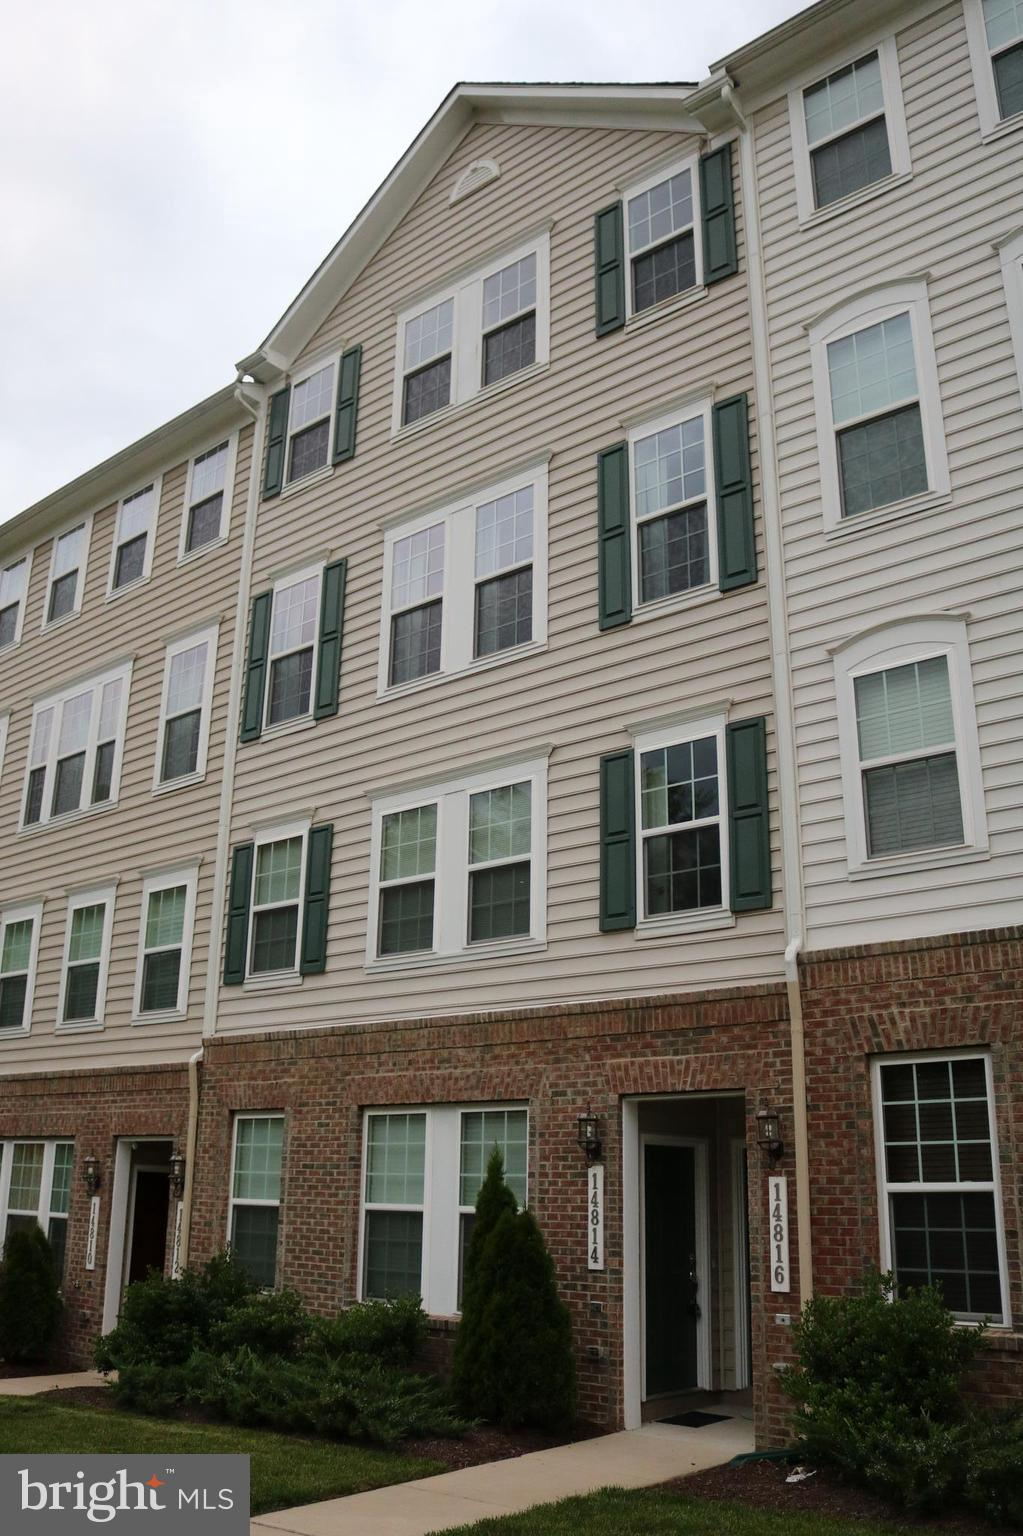 This condo style town home features a gourmet kitchen w/large island open to LR. Spacious Master w/ full en-suite, spacious vanity & lg tiled shower. Additional bedroom & full hallway bath w/tub & shower. Amazing commuter location just .8 mi to I-95, Stonebridge at Potomac TC & Wegmans, 1.3 mi to Potomac Mills, Near VRE, Rt 1, & Quantico